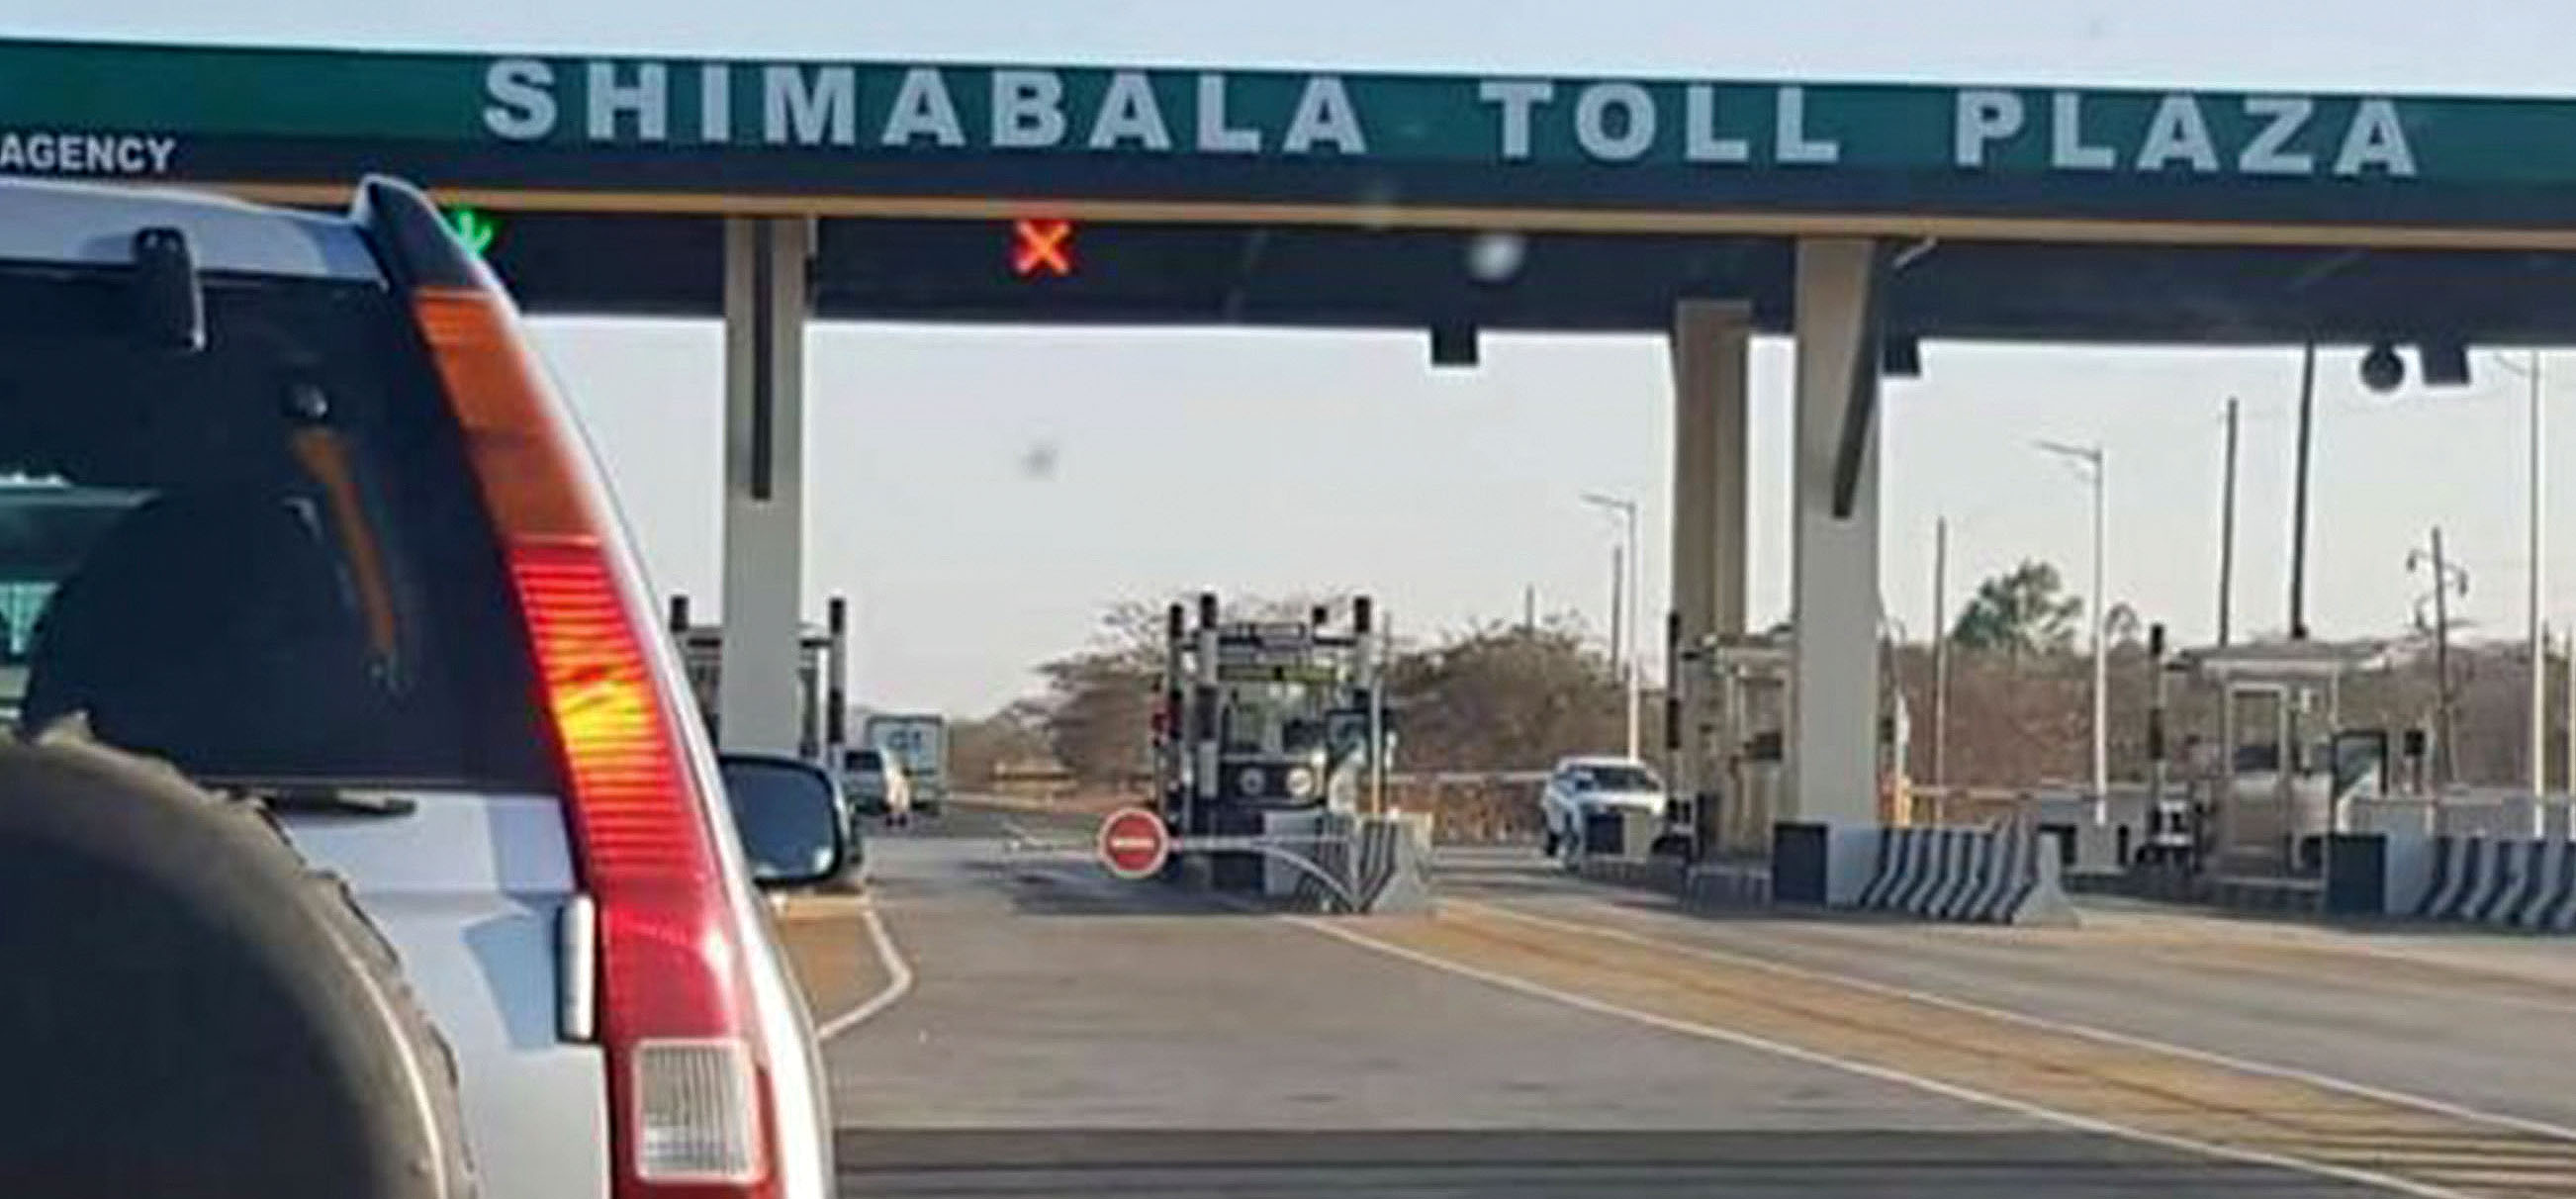 6 toll plazas not on title